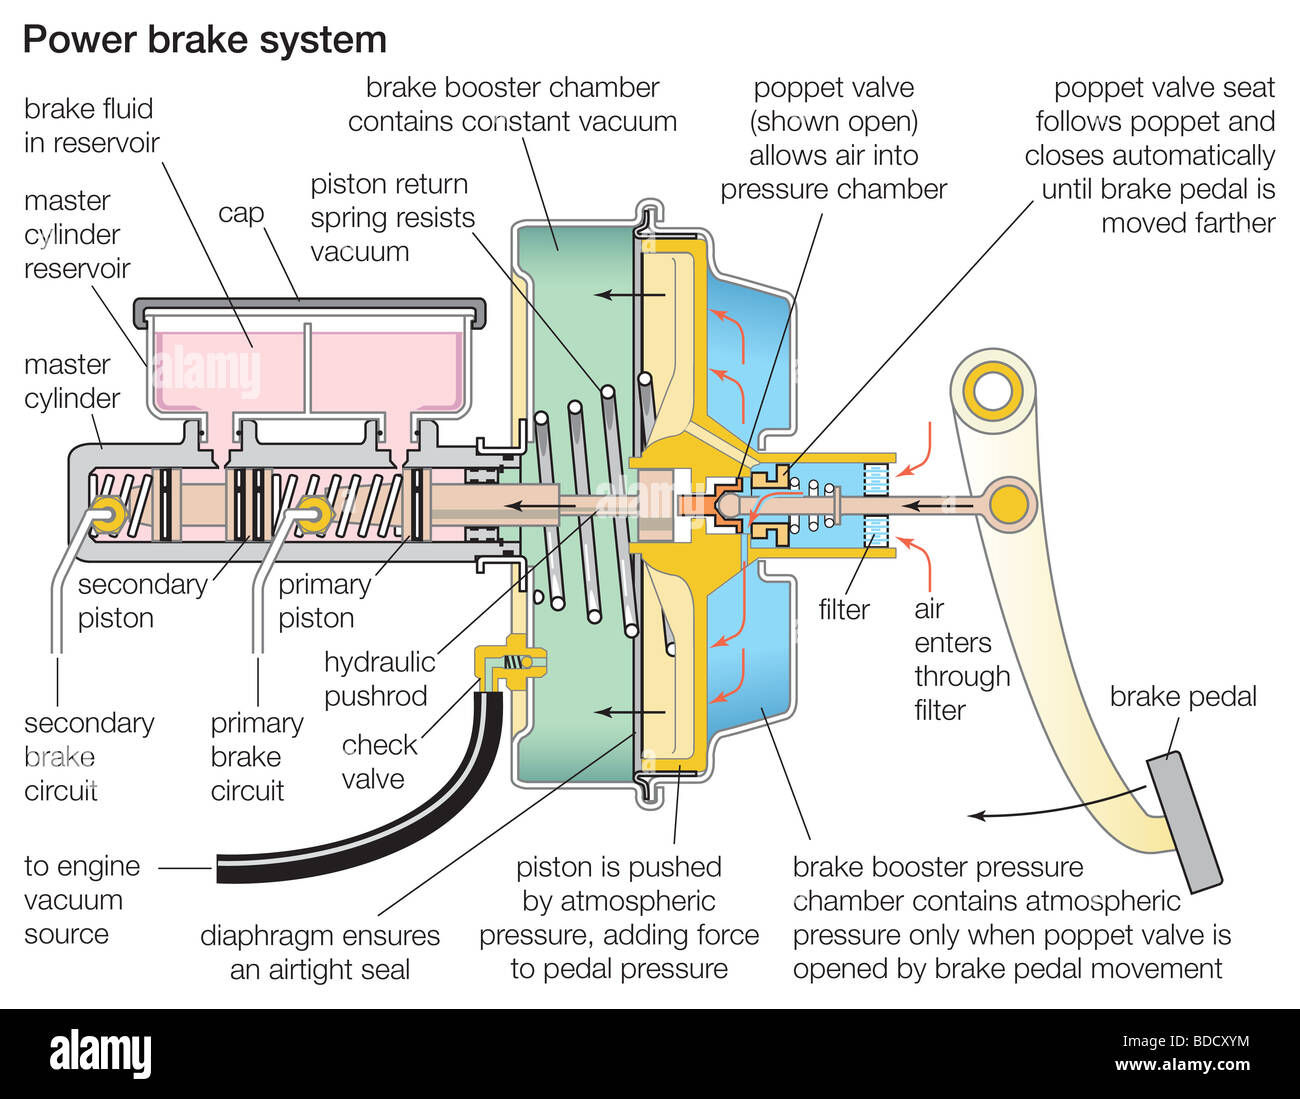 hight resolution of power brake system